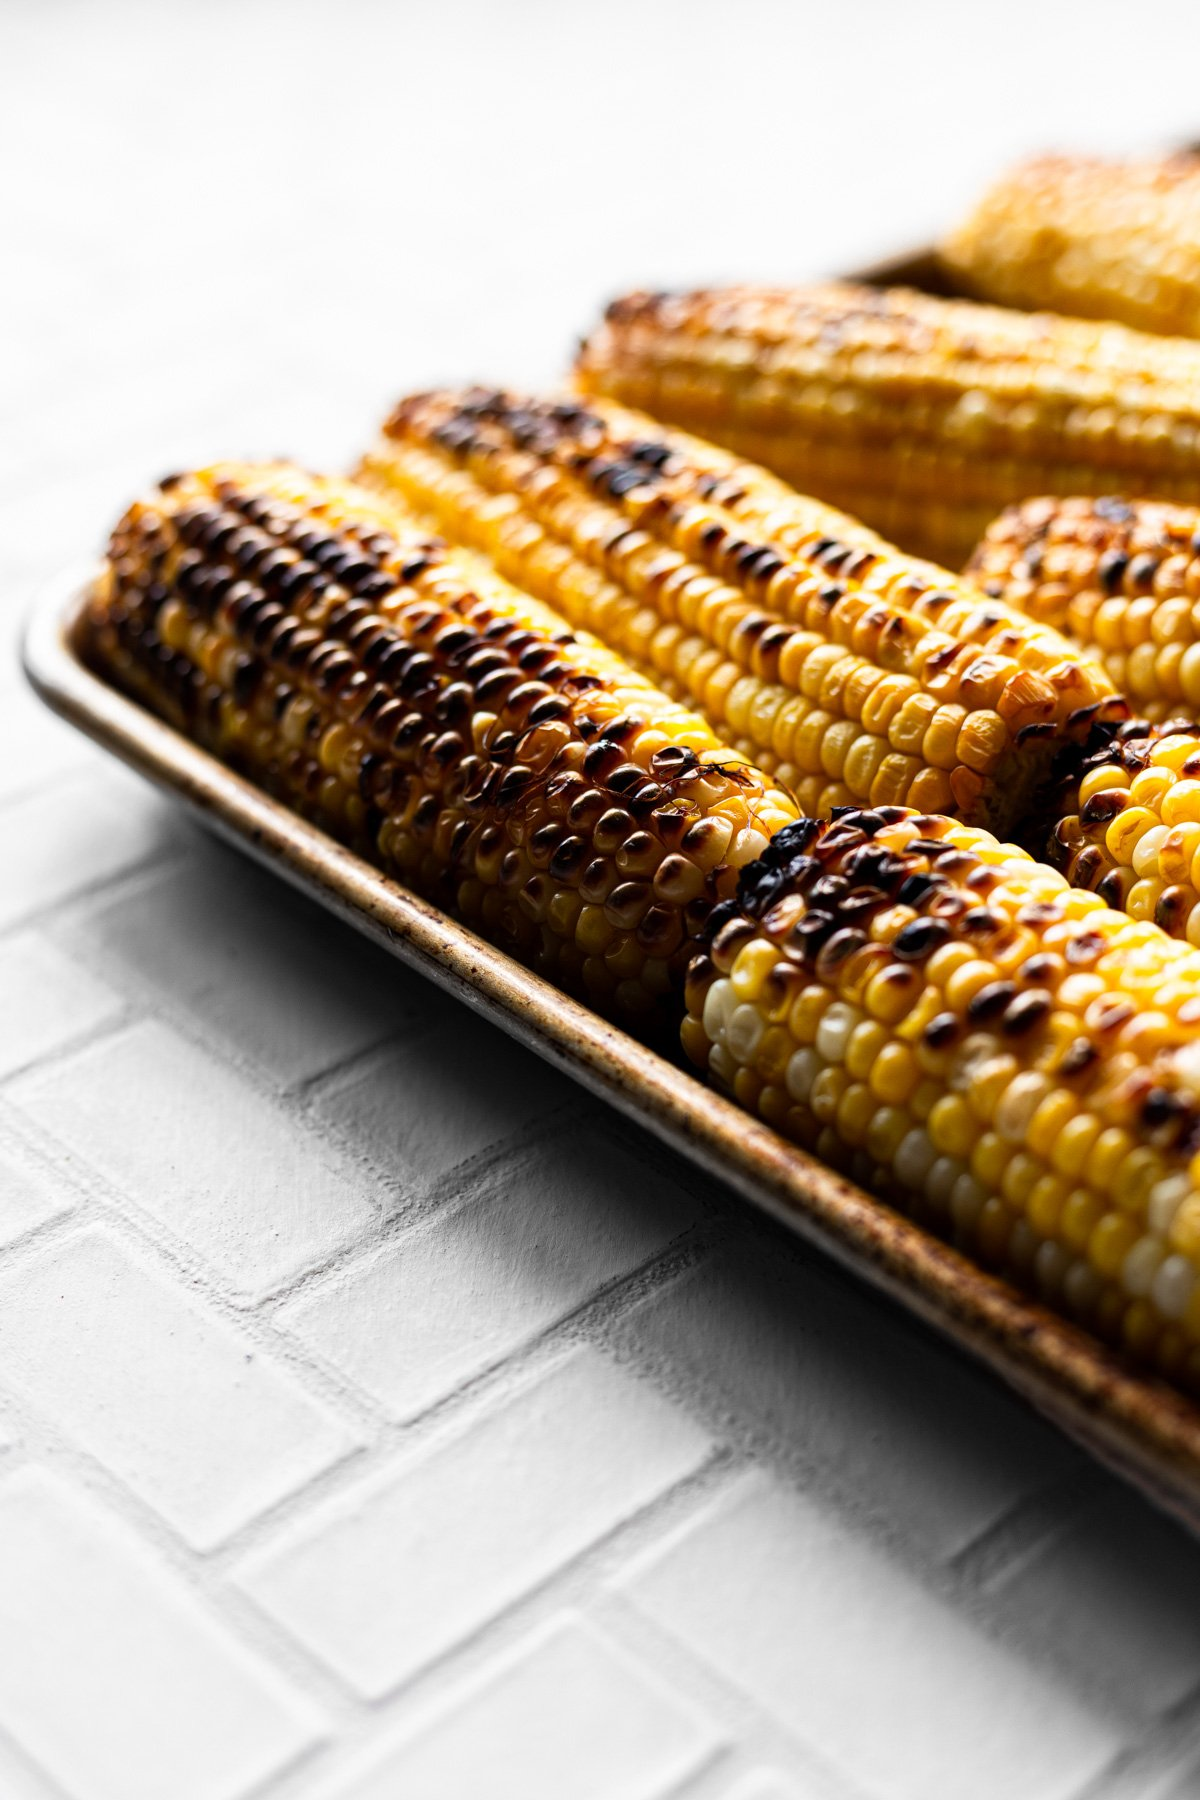 roasted corn on a sheet pan for arugula salad recipe